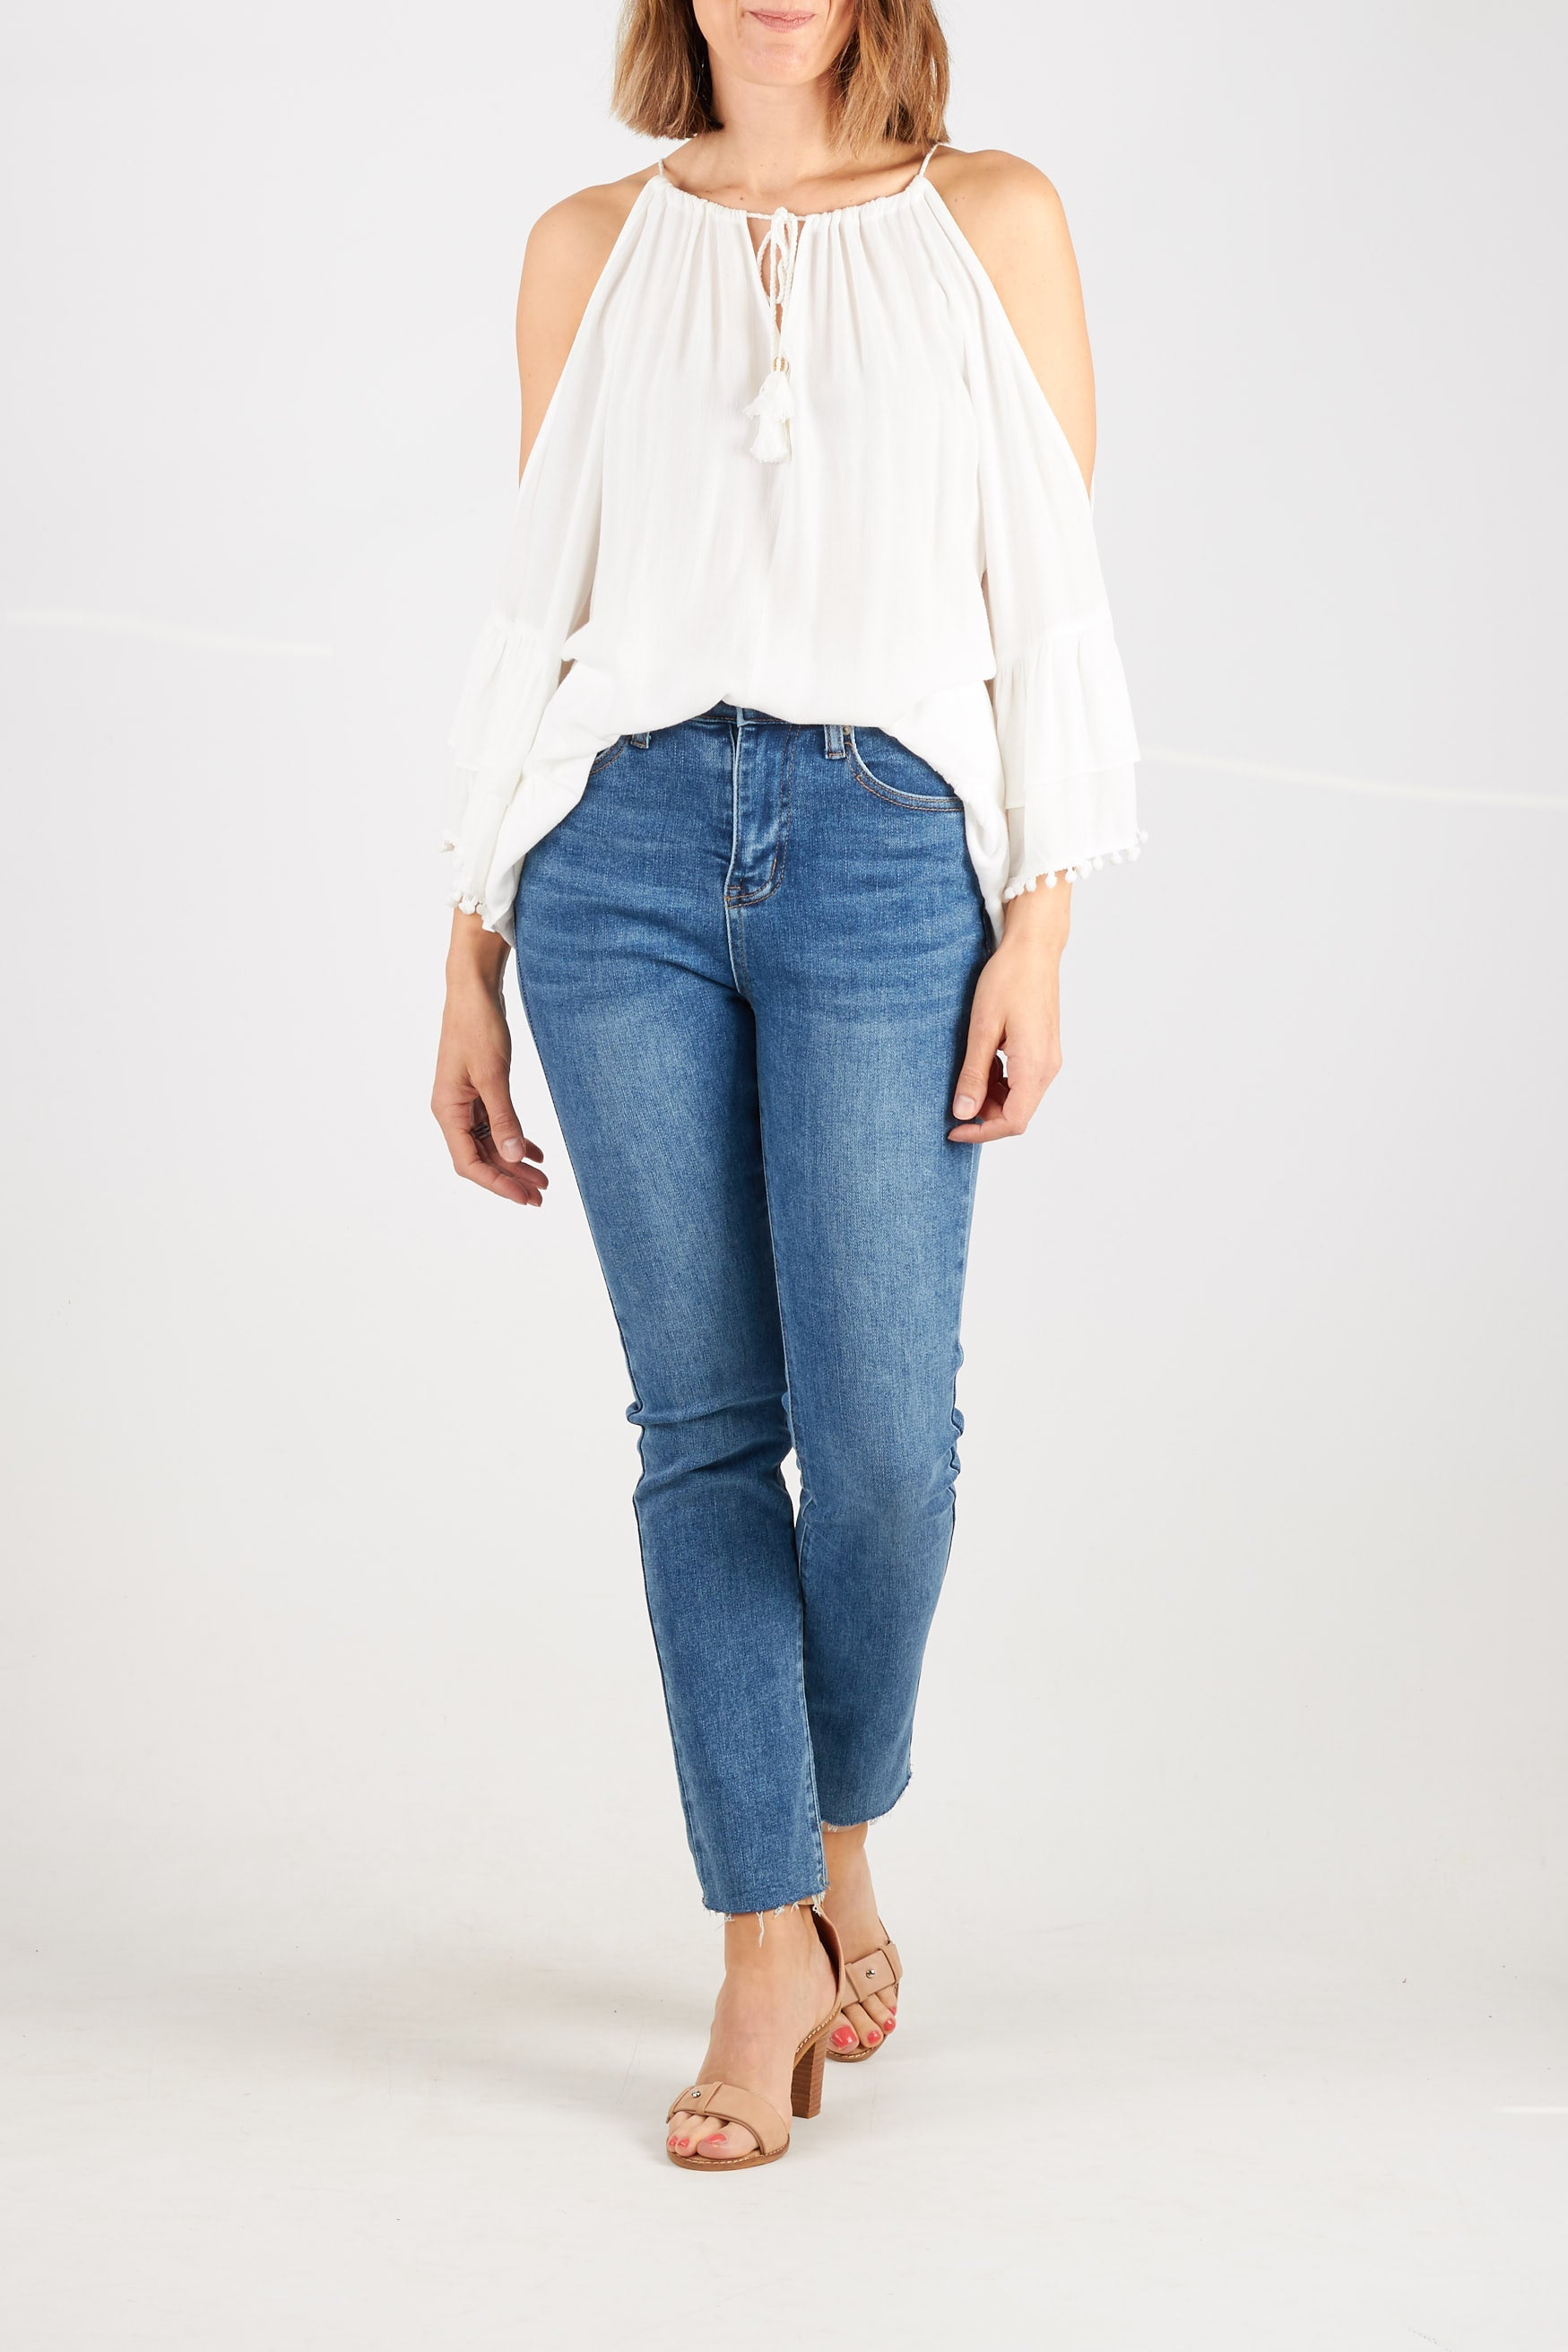 White blouse with cutaway shoulders, rope tie at neck and pom pom tassel detailing on sleeves and hem.